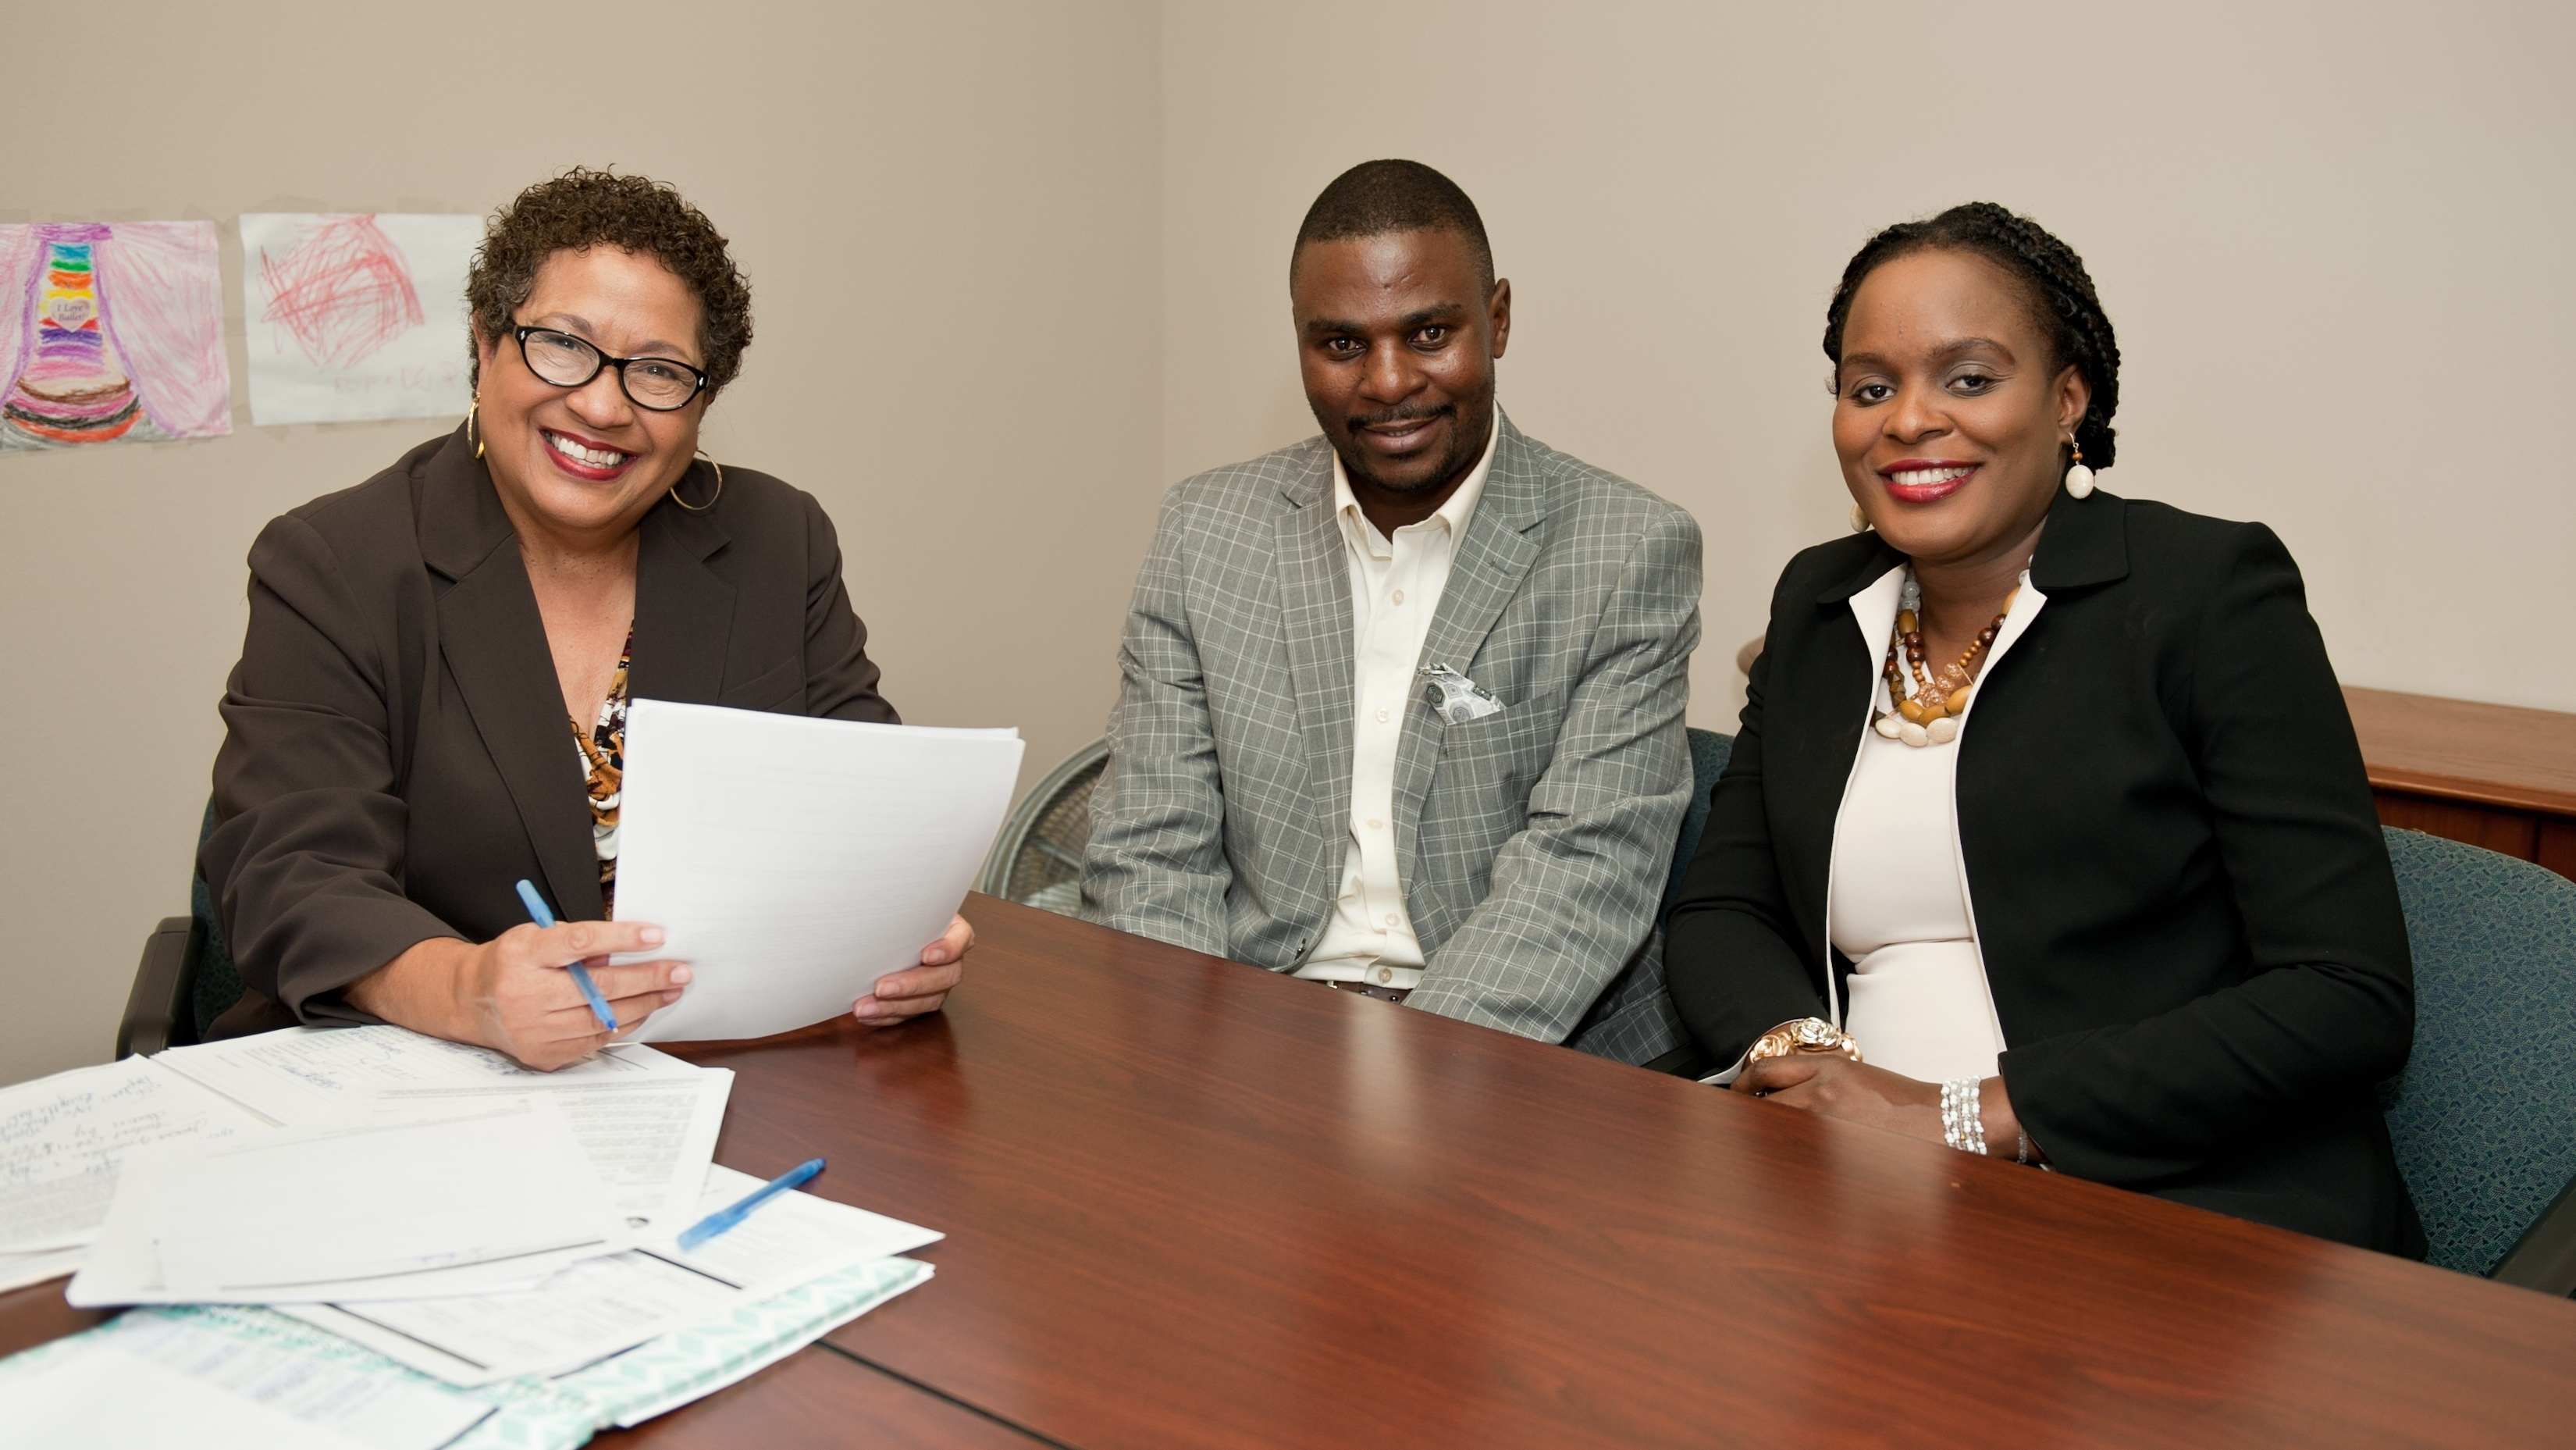 Linda, Financial Coach at Model Cities, smiles with Fred and Brigitte at a coaching session.